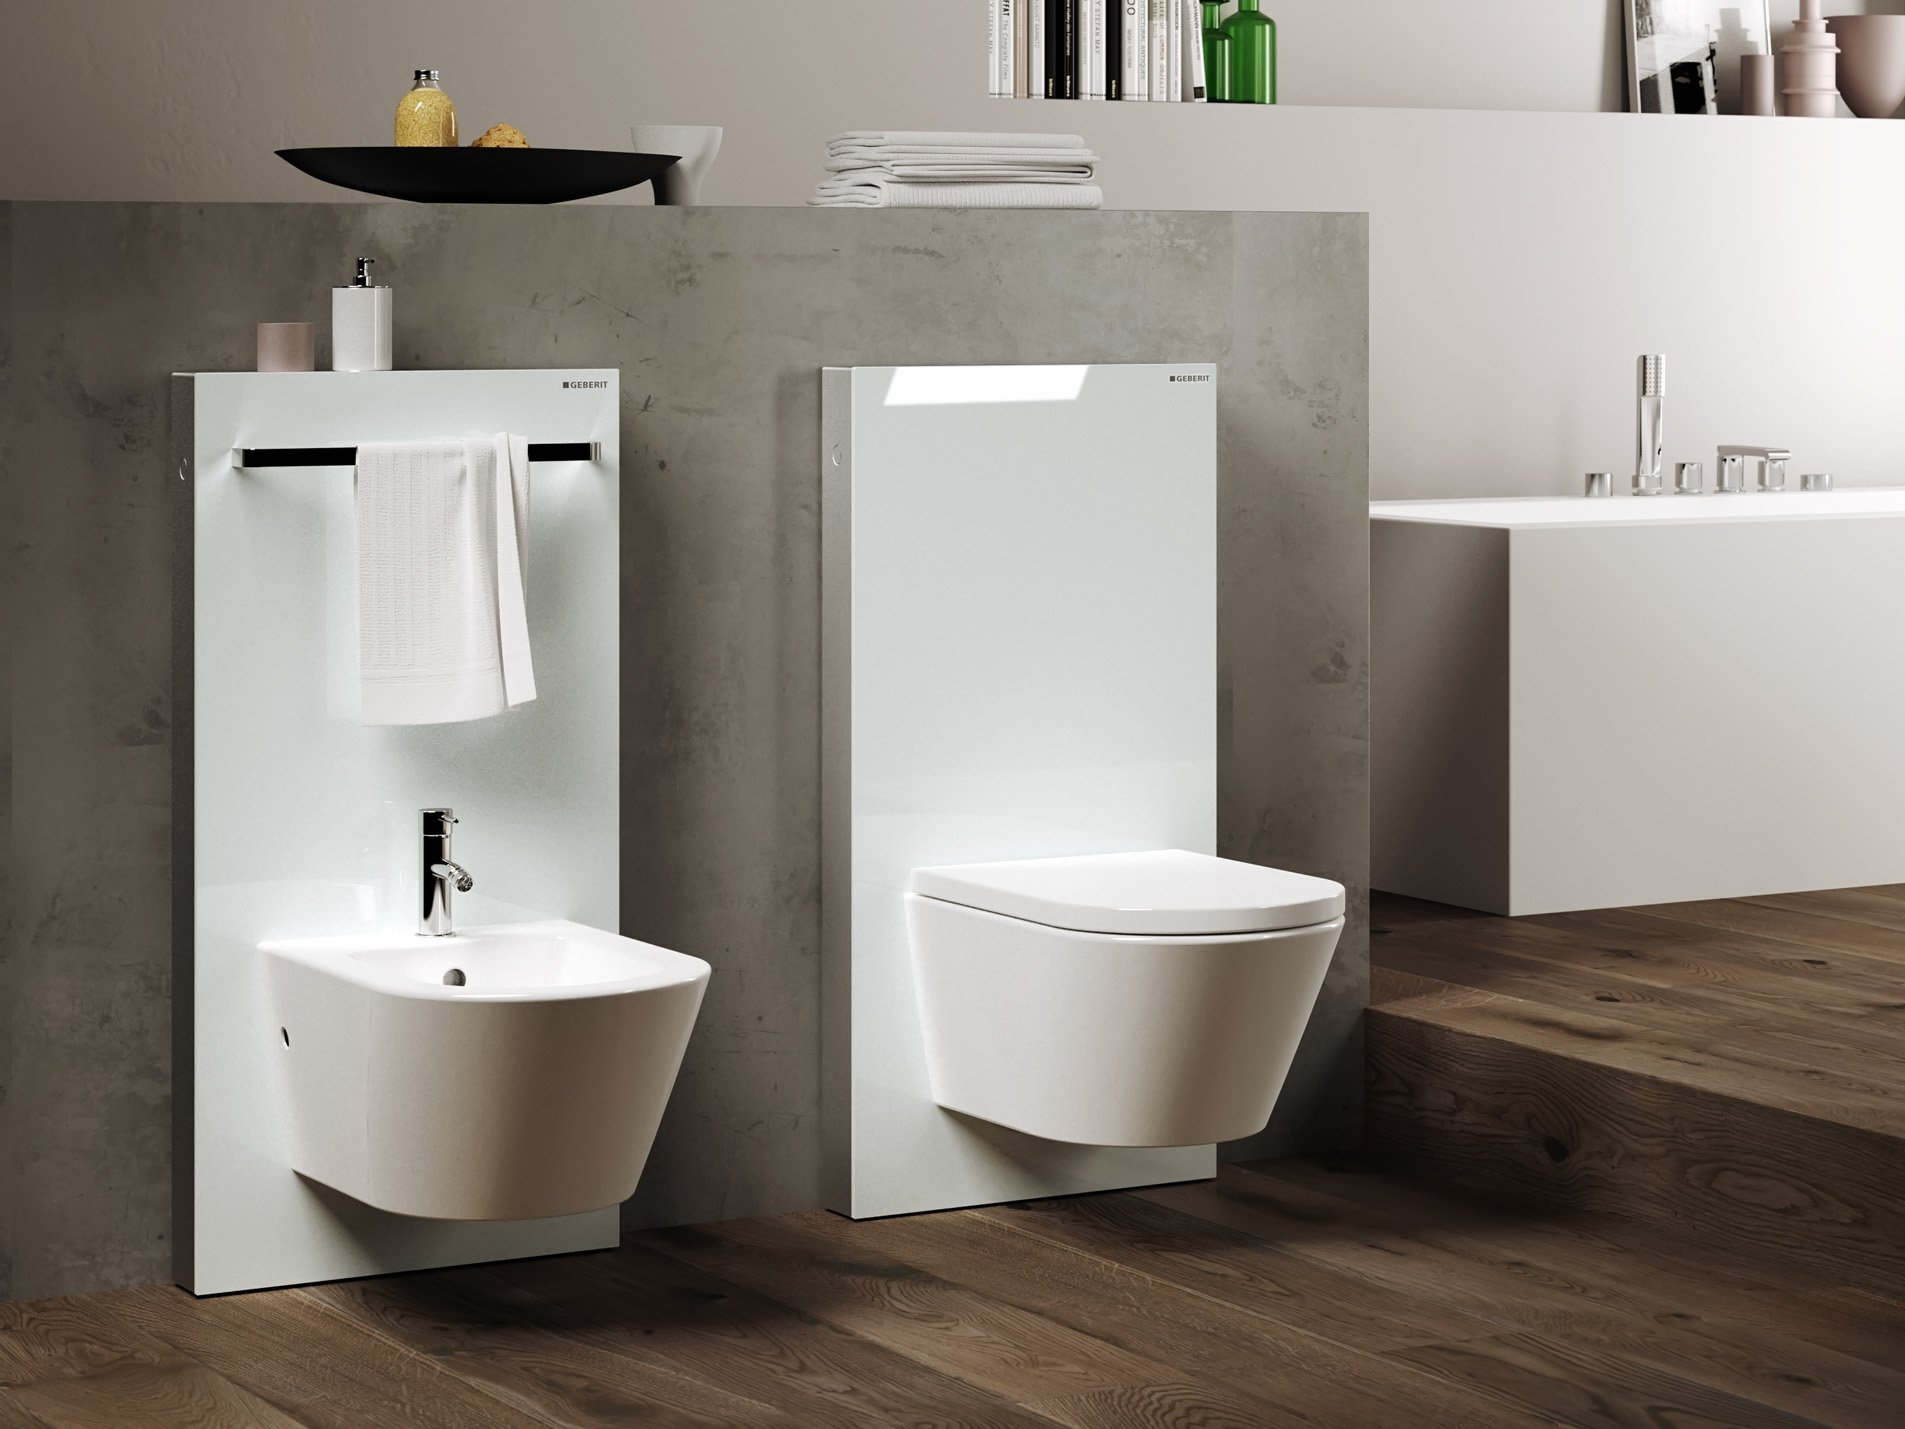 Monolith sanitary module for bidets by geberit italia for Geberit products